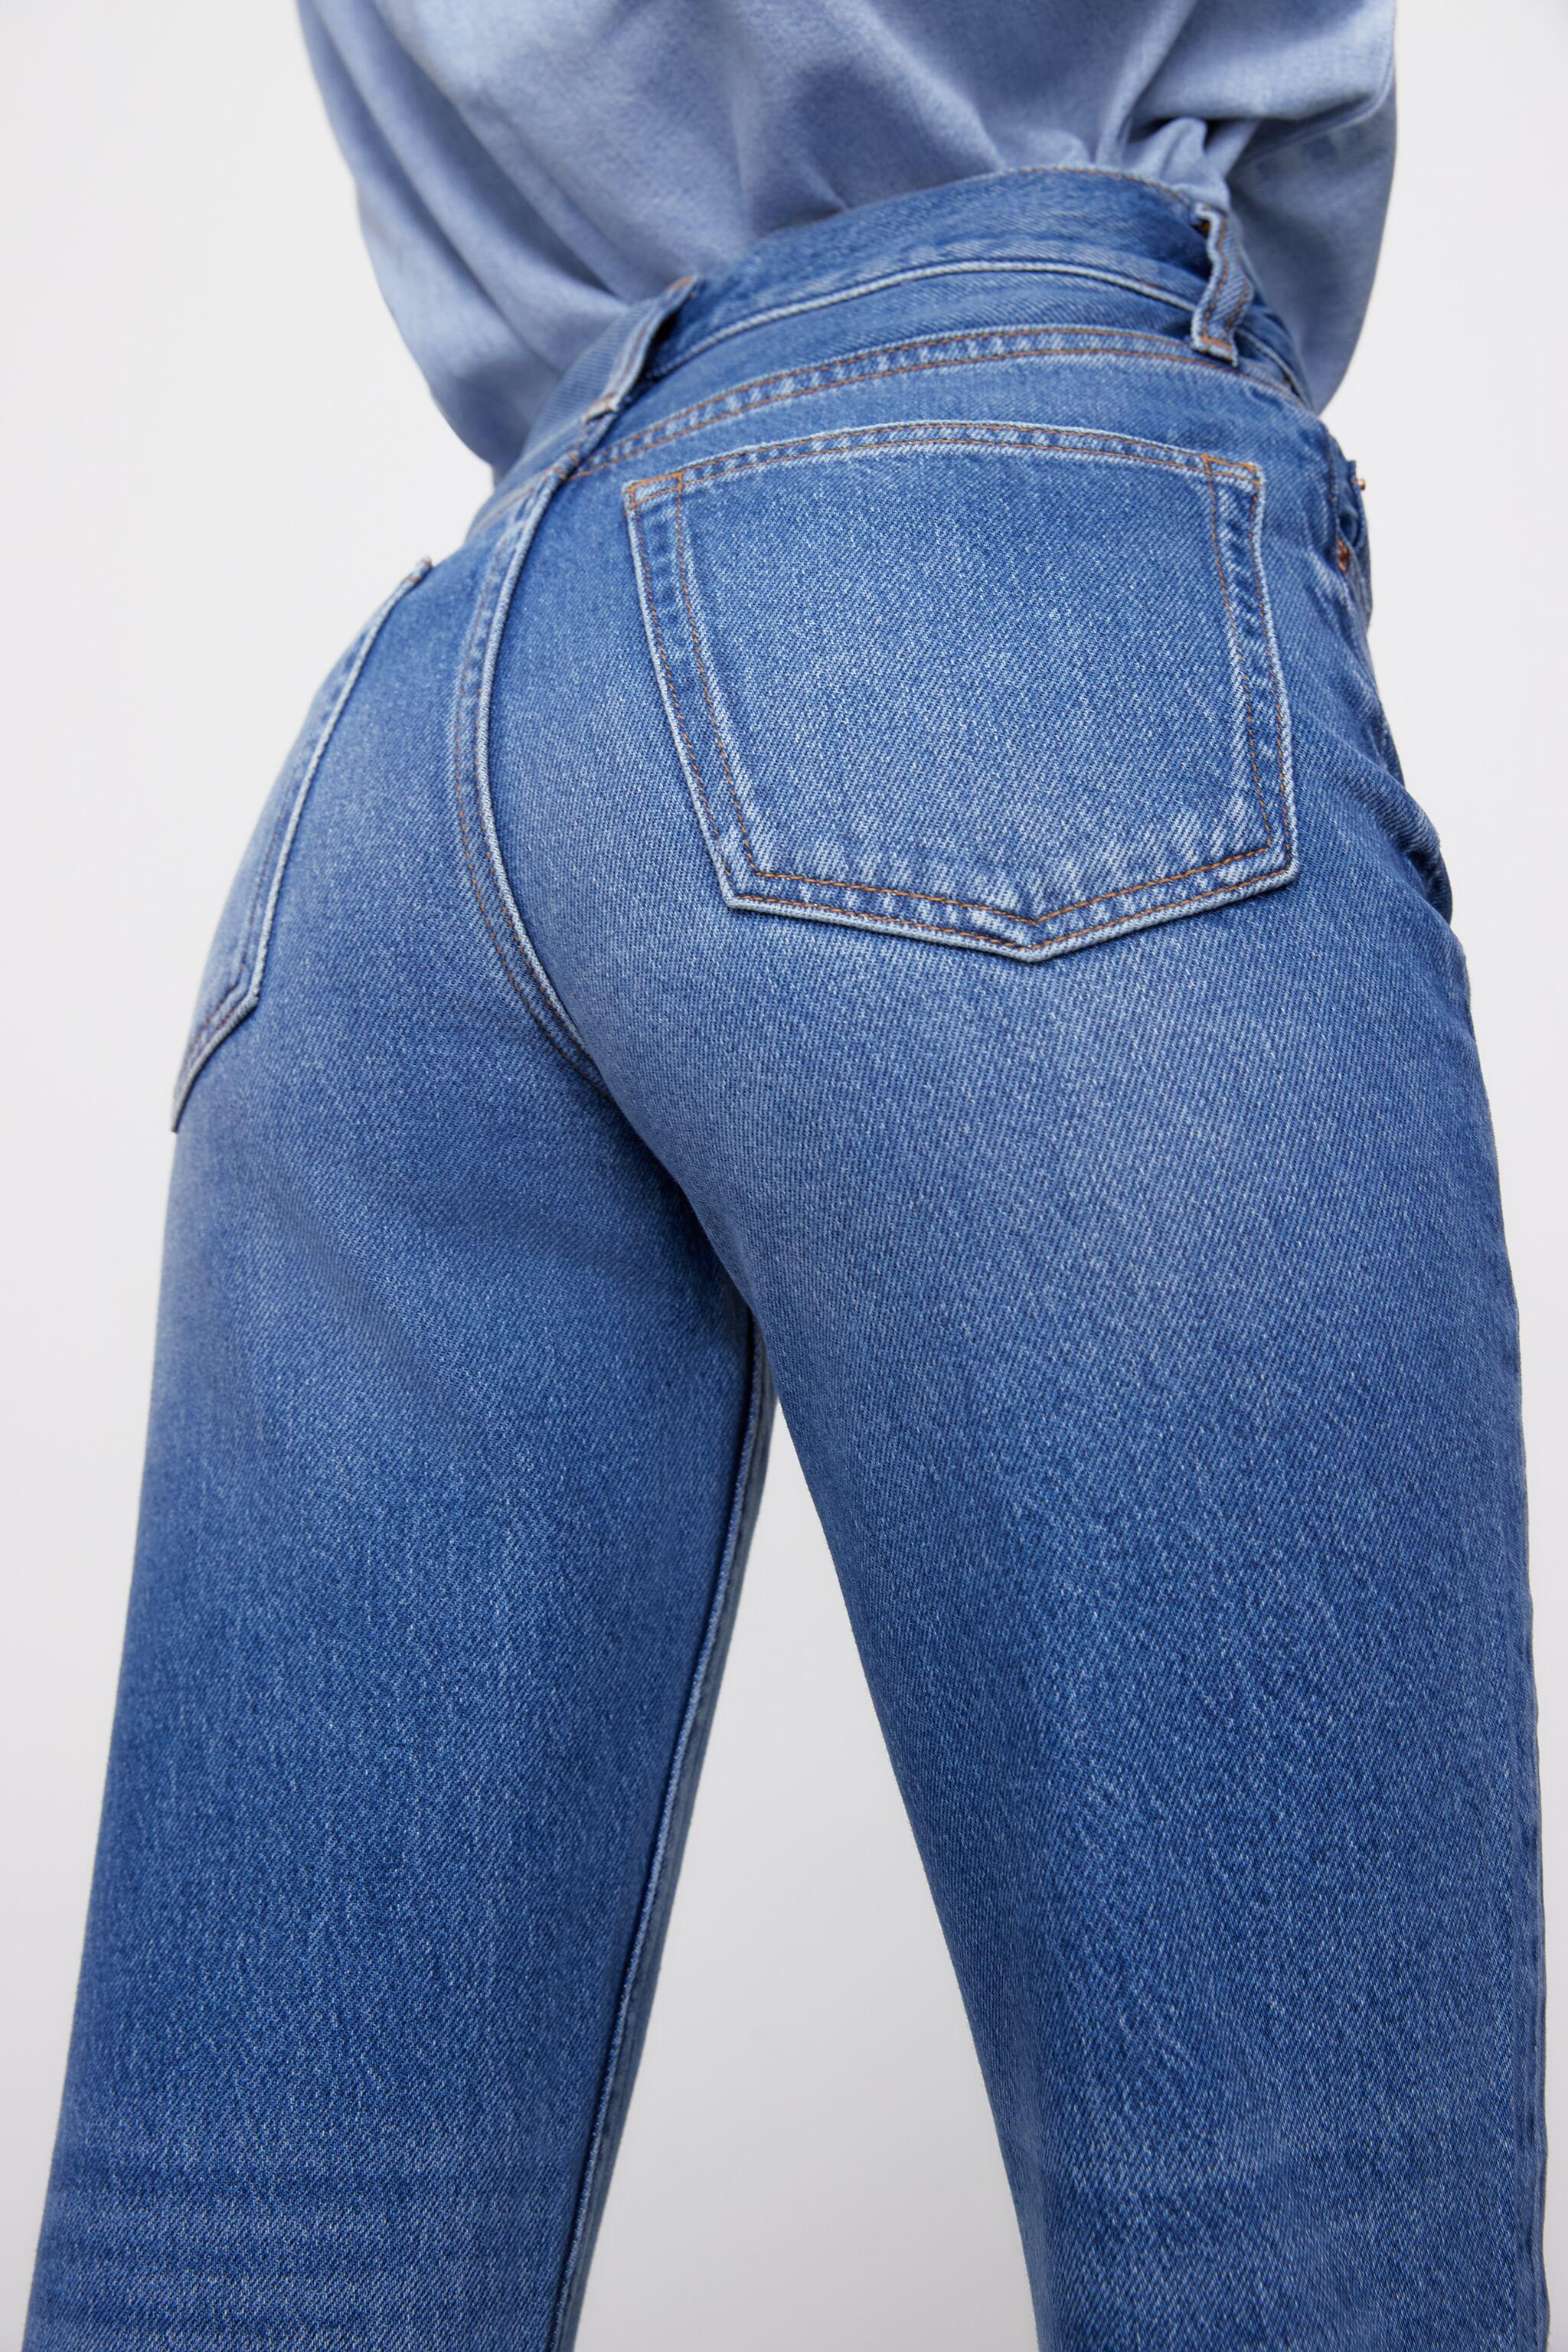 ZW THE ZIA FLARE JEANS 5